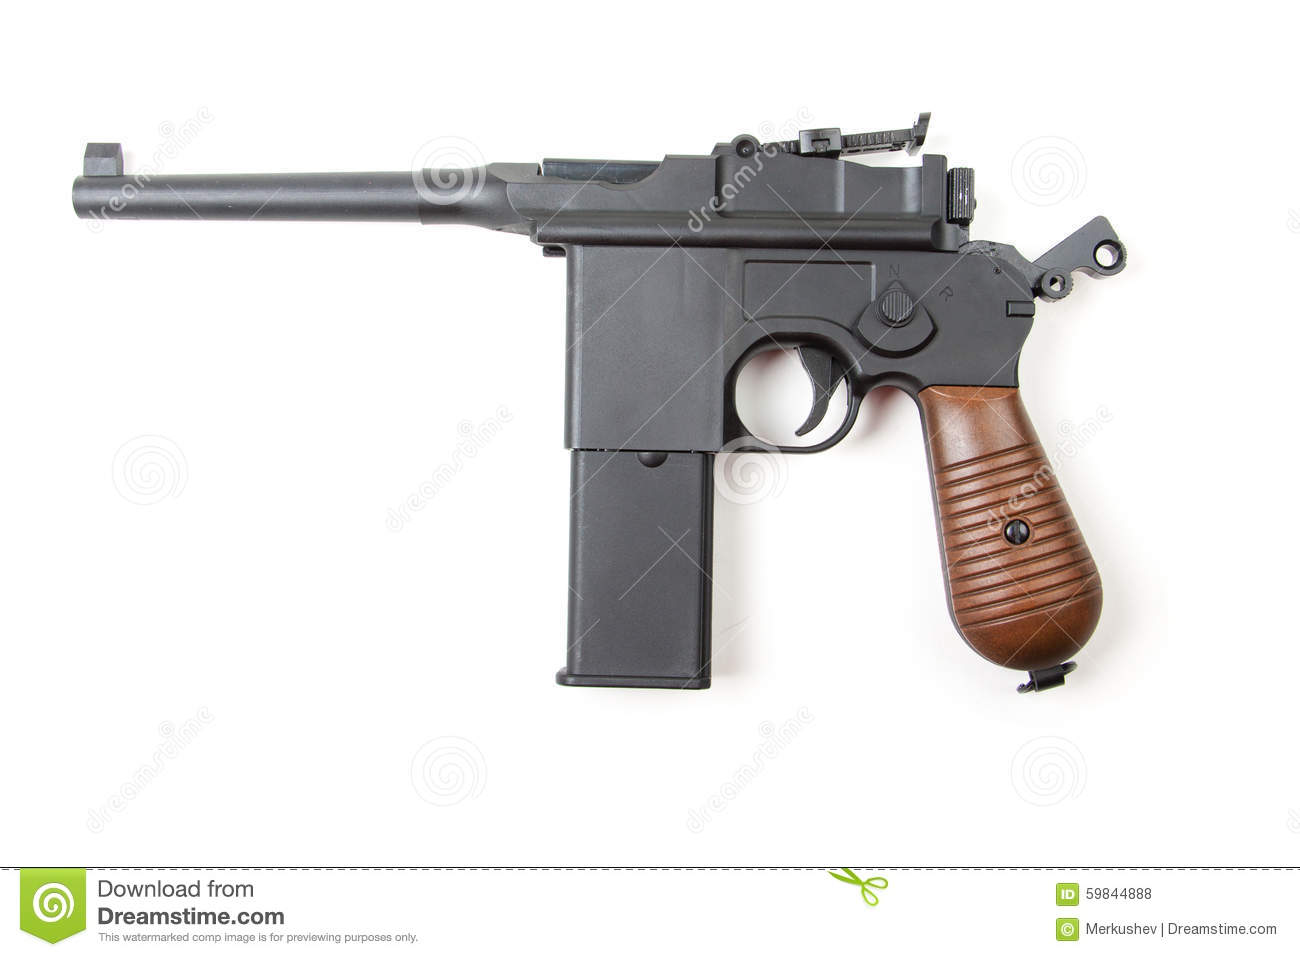 gun white background - photo #32